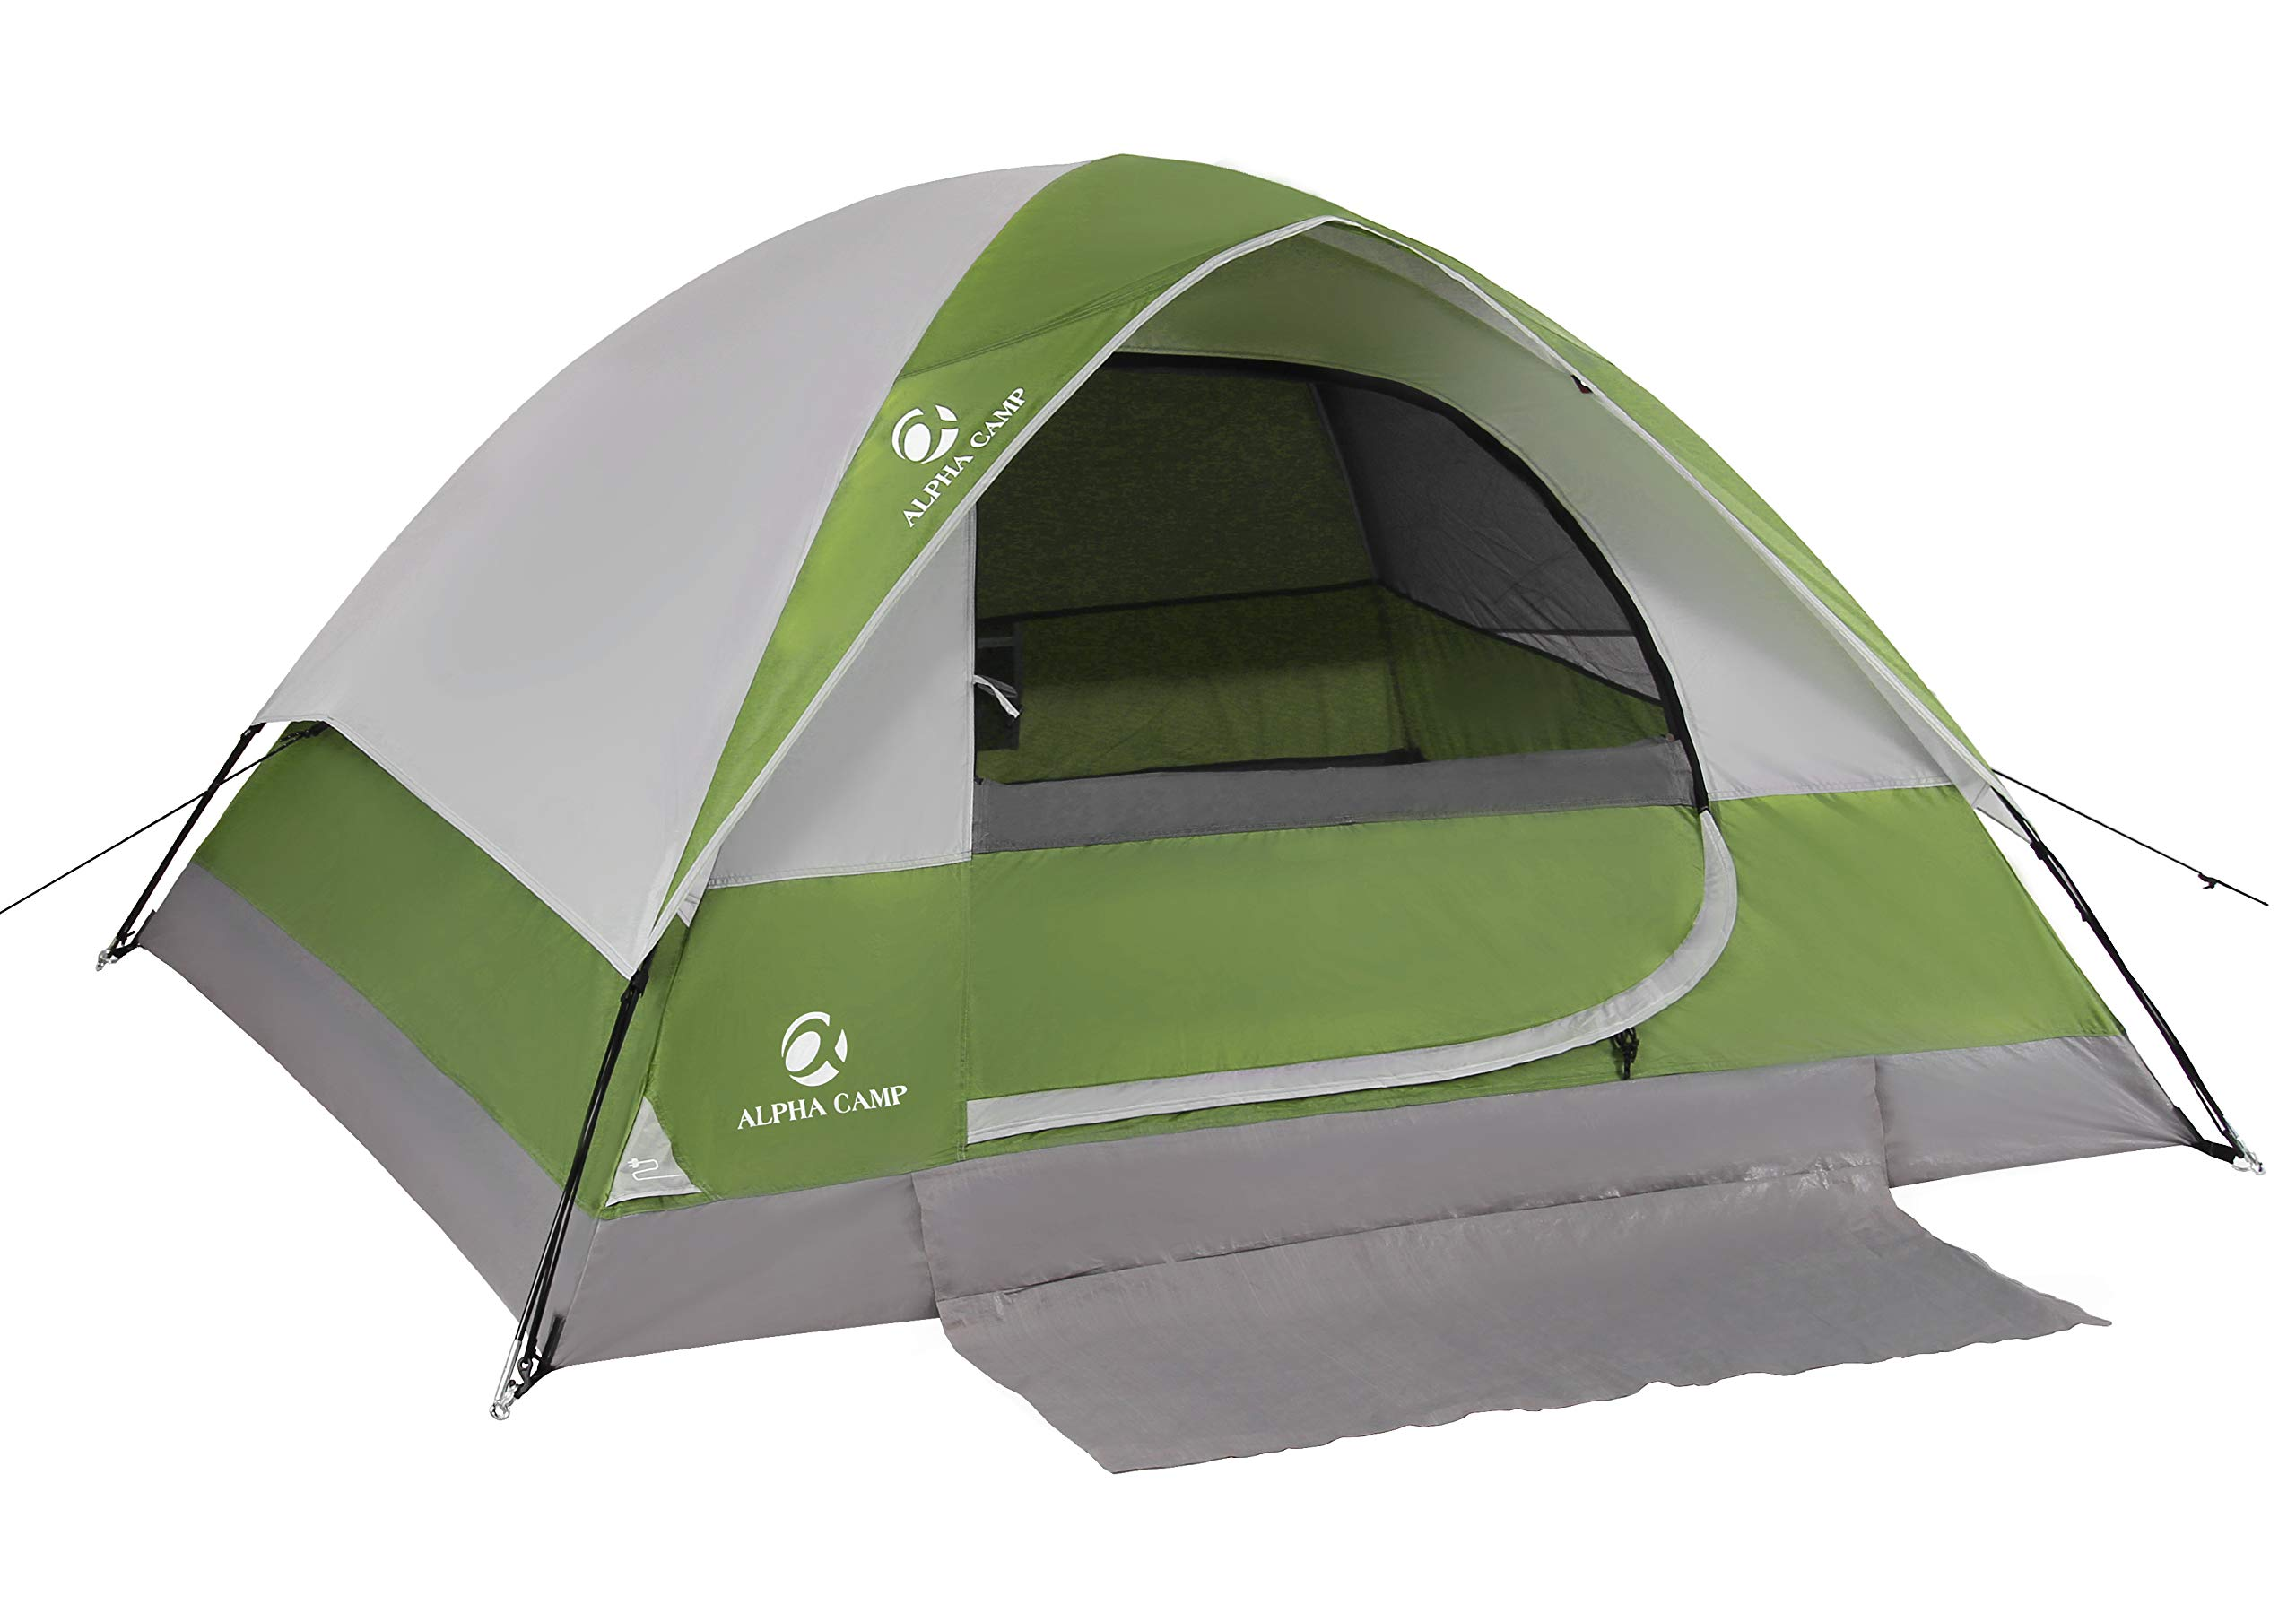 ALPHA CAMP 2-Person Camping Dome Tent with Carry Bag, Lightweight Waterproof Portable Backpacking Tent for Outdoor Camping/Hiking by ALPHA CAMP